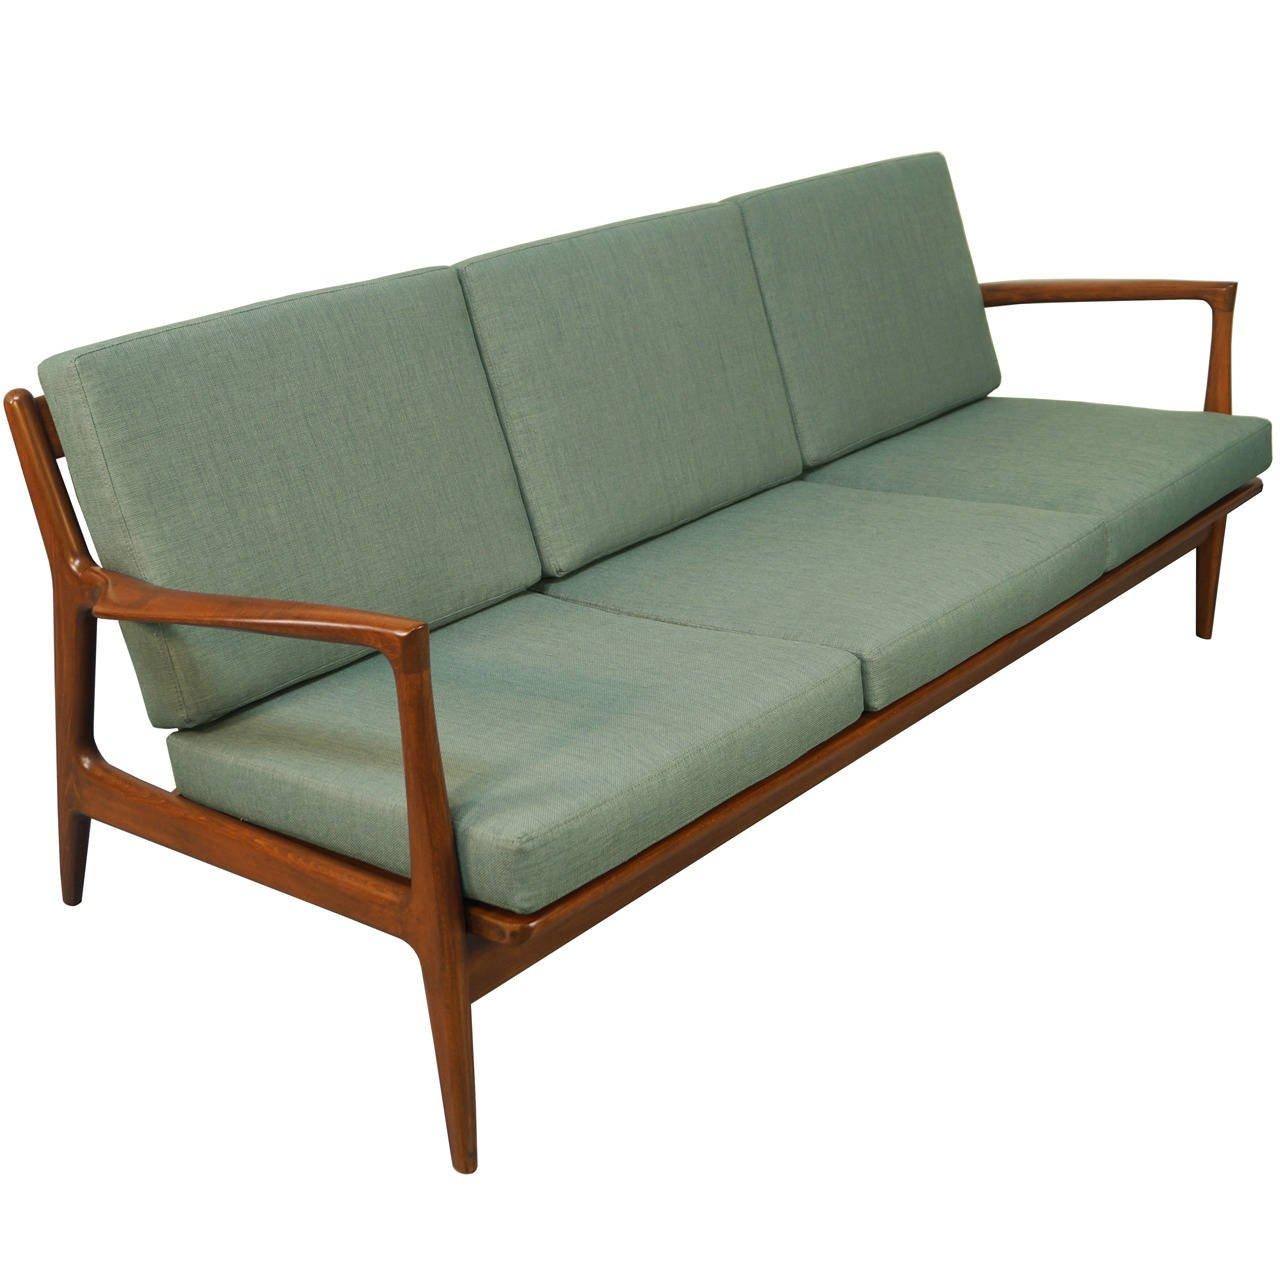 Danish Modern Sofaib Kofod Ln At 1stdibs With Sofas Image 4 Of 20